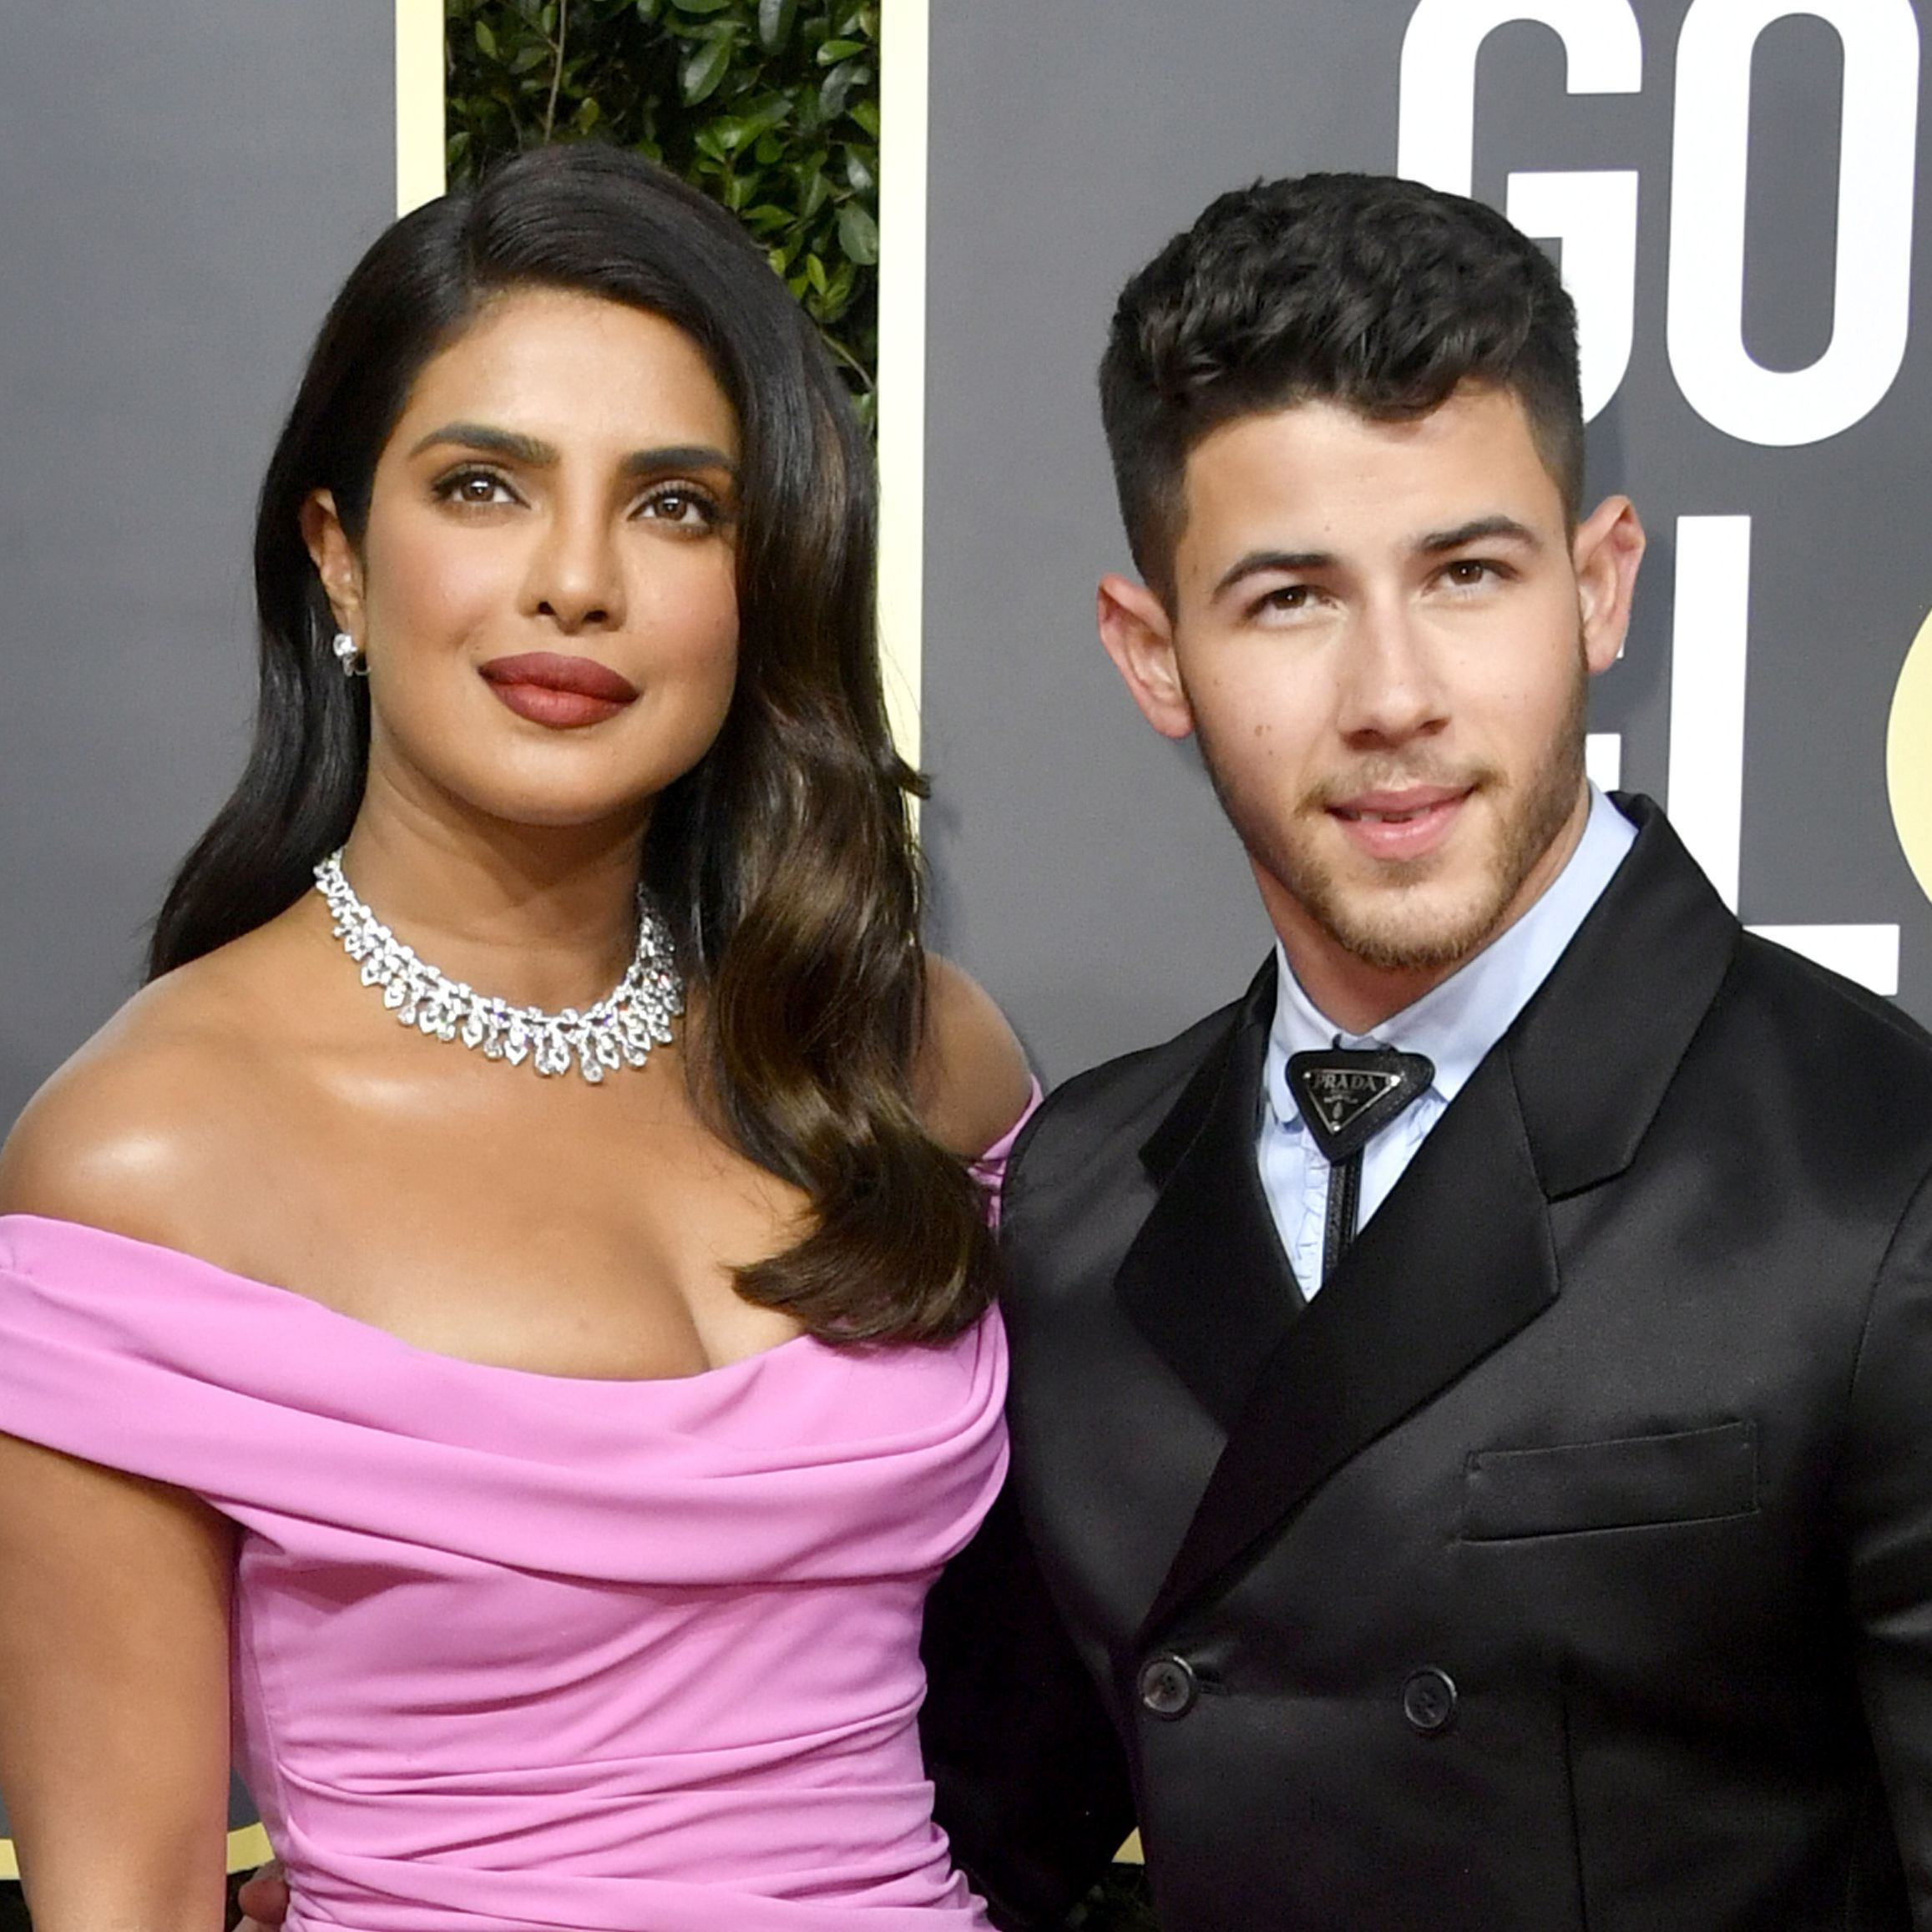 Priyanka Chopra Feels 'Empowered' By Marriage To Nick Jonas - MTV